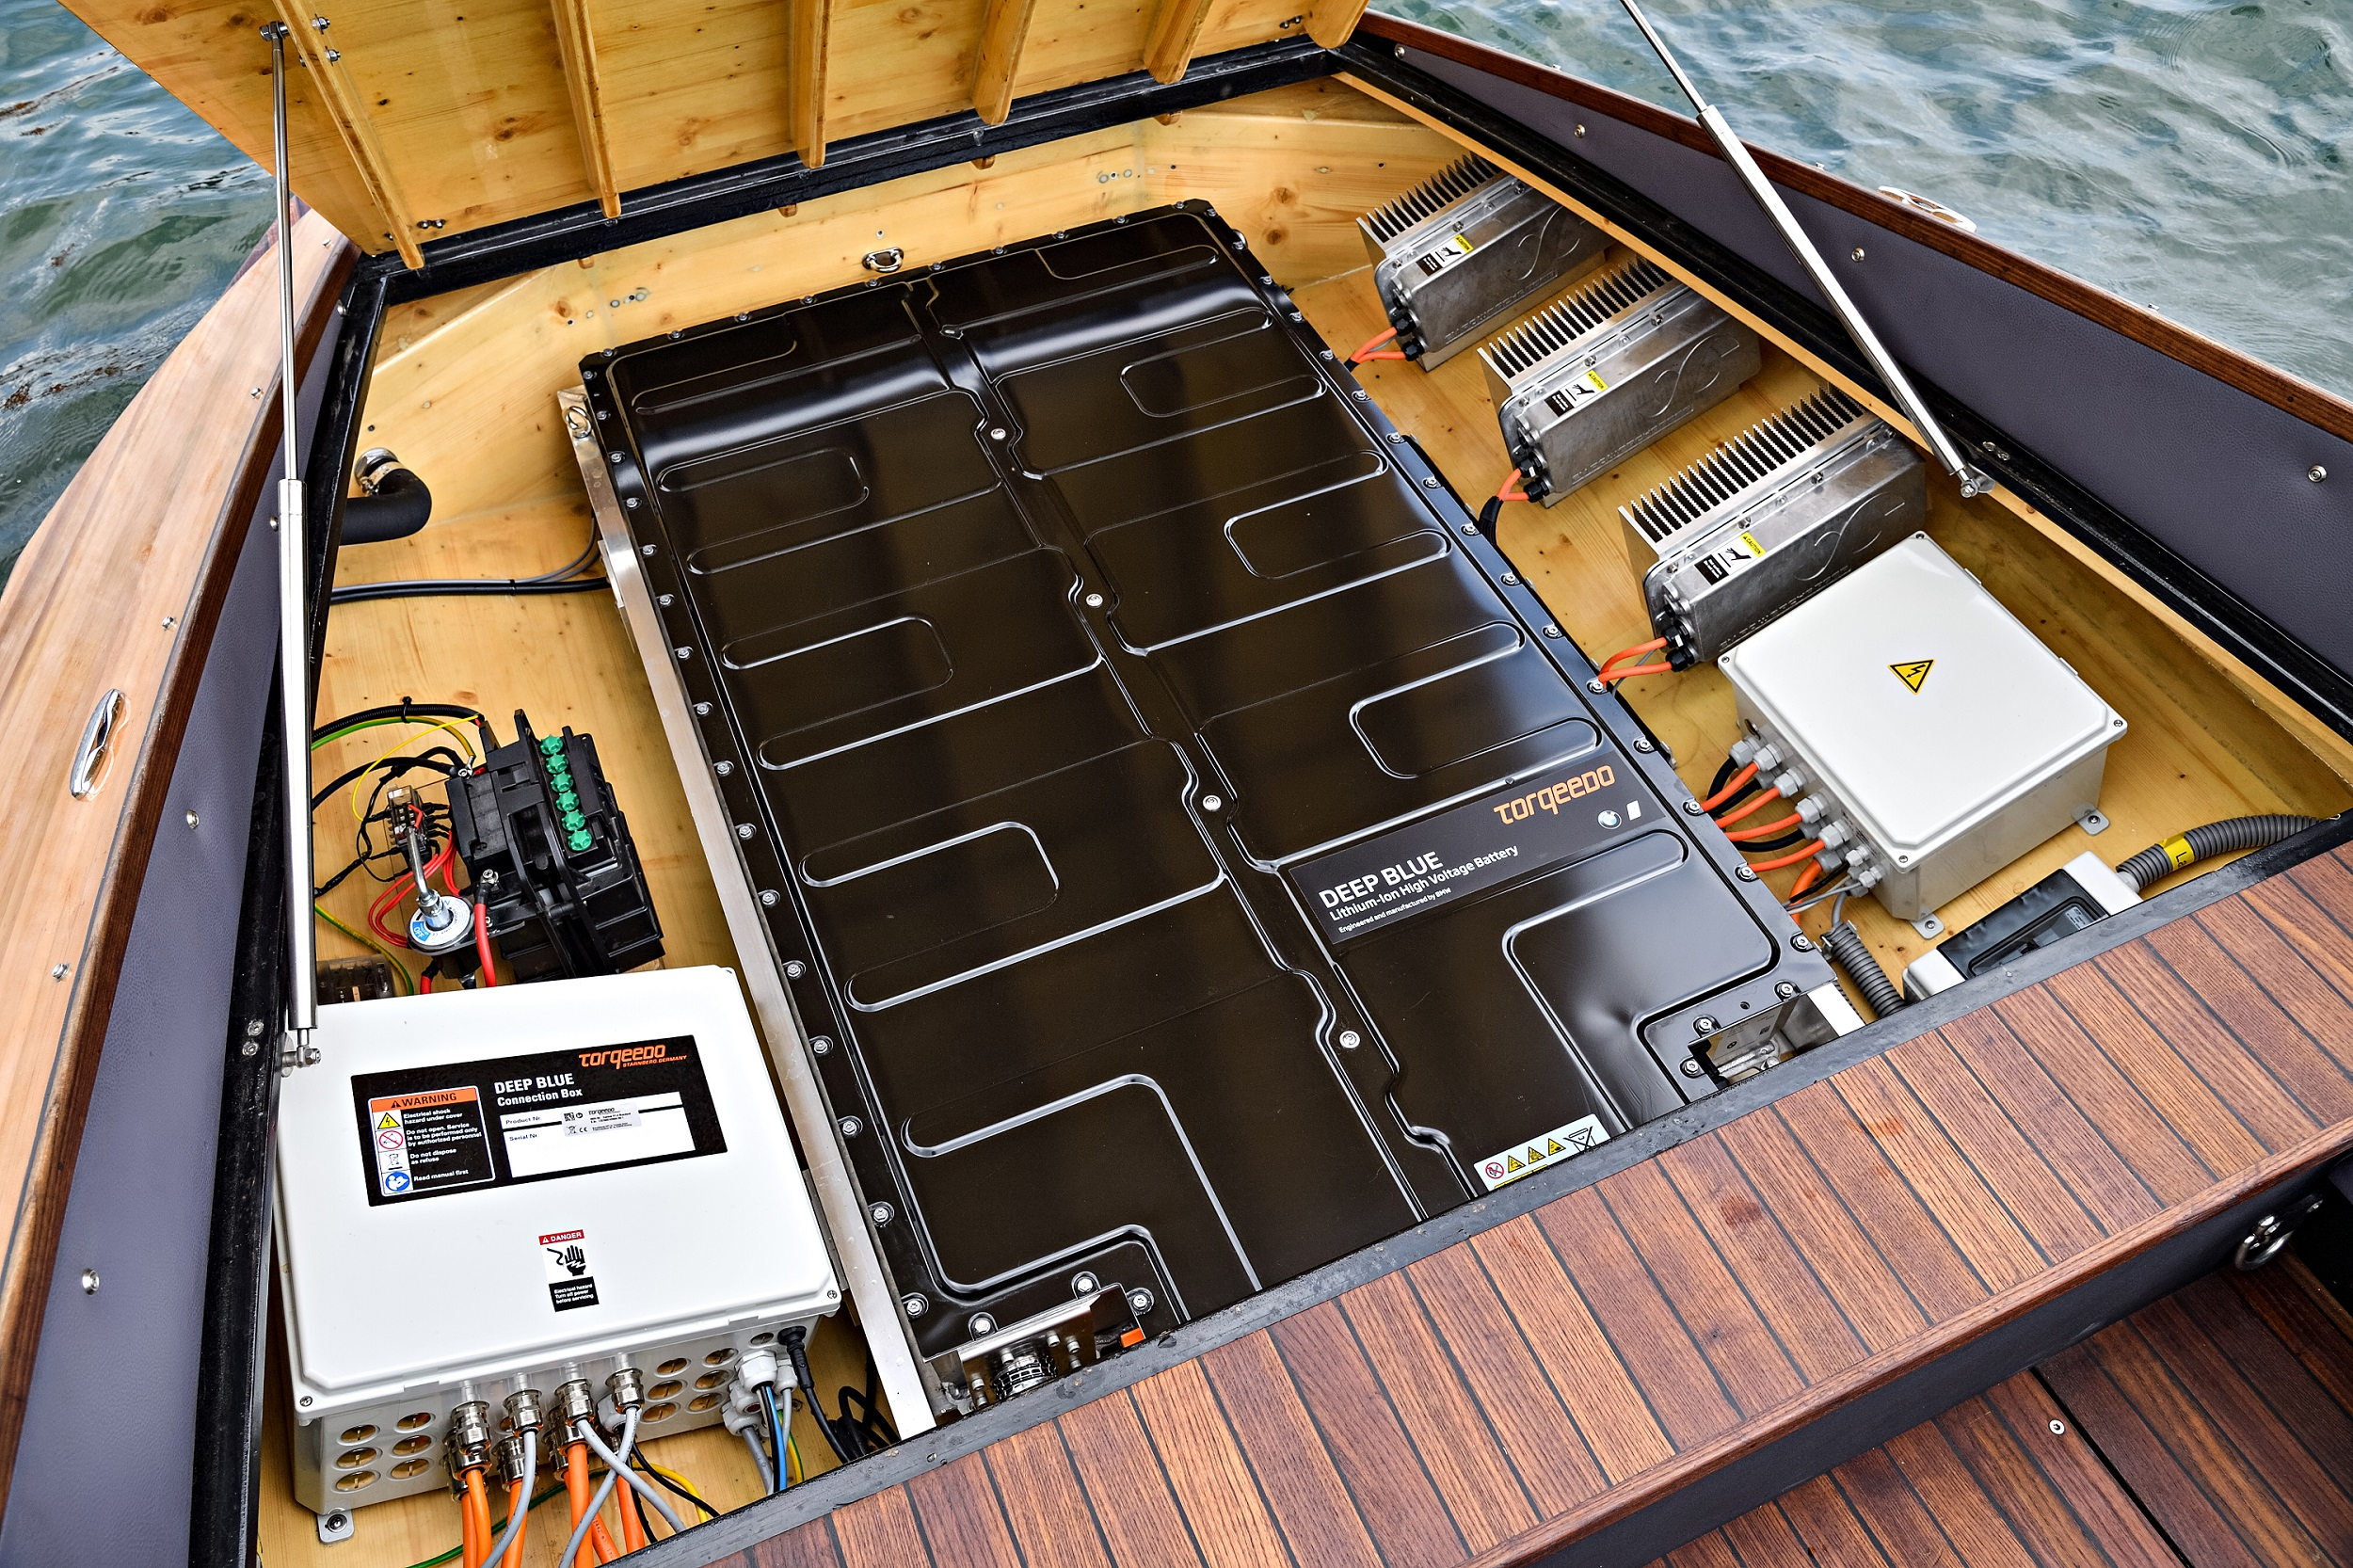 Image result for boat with a lithium ion battery""